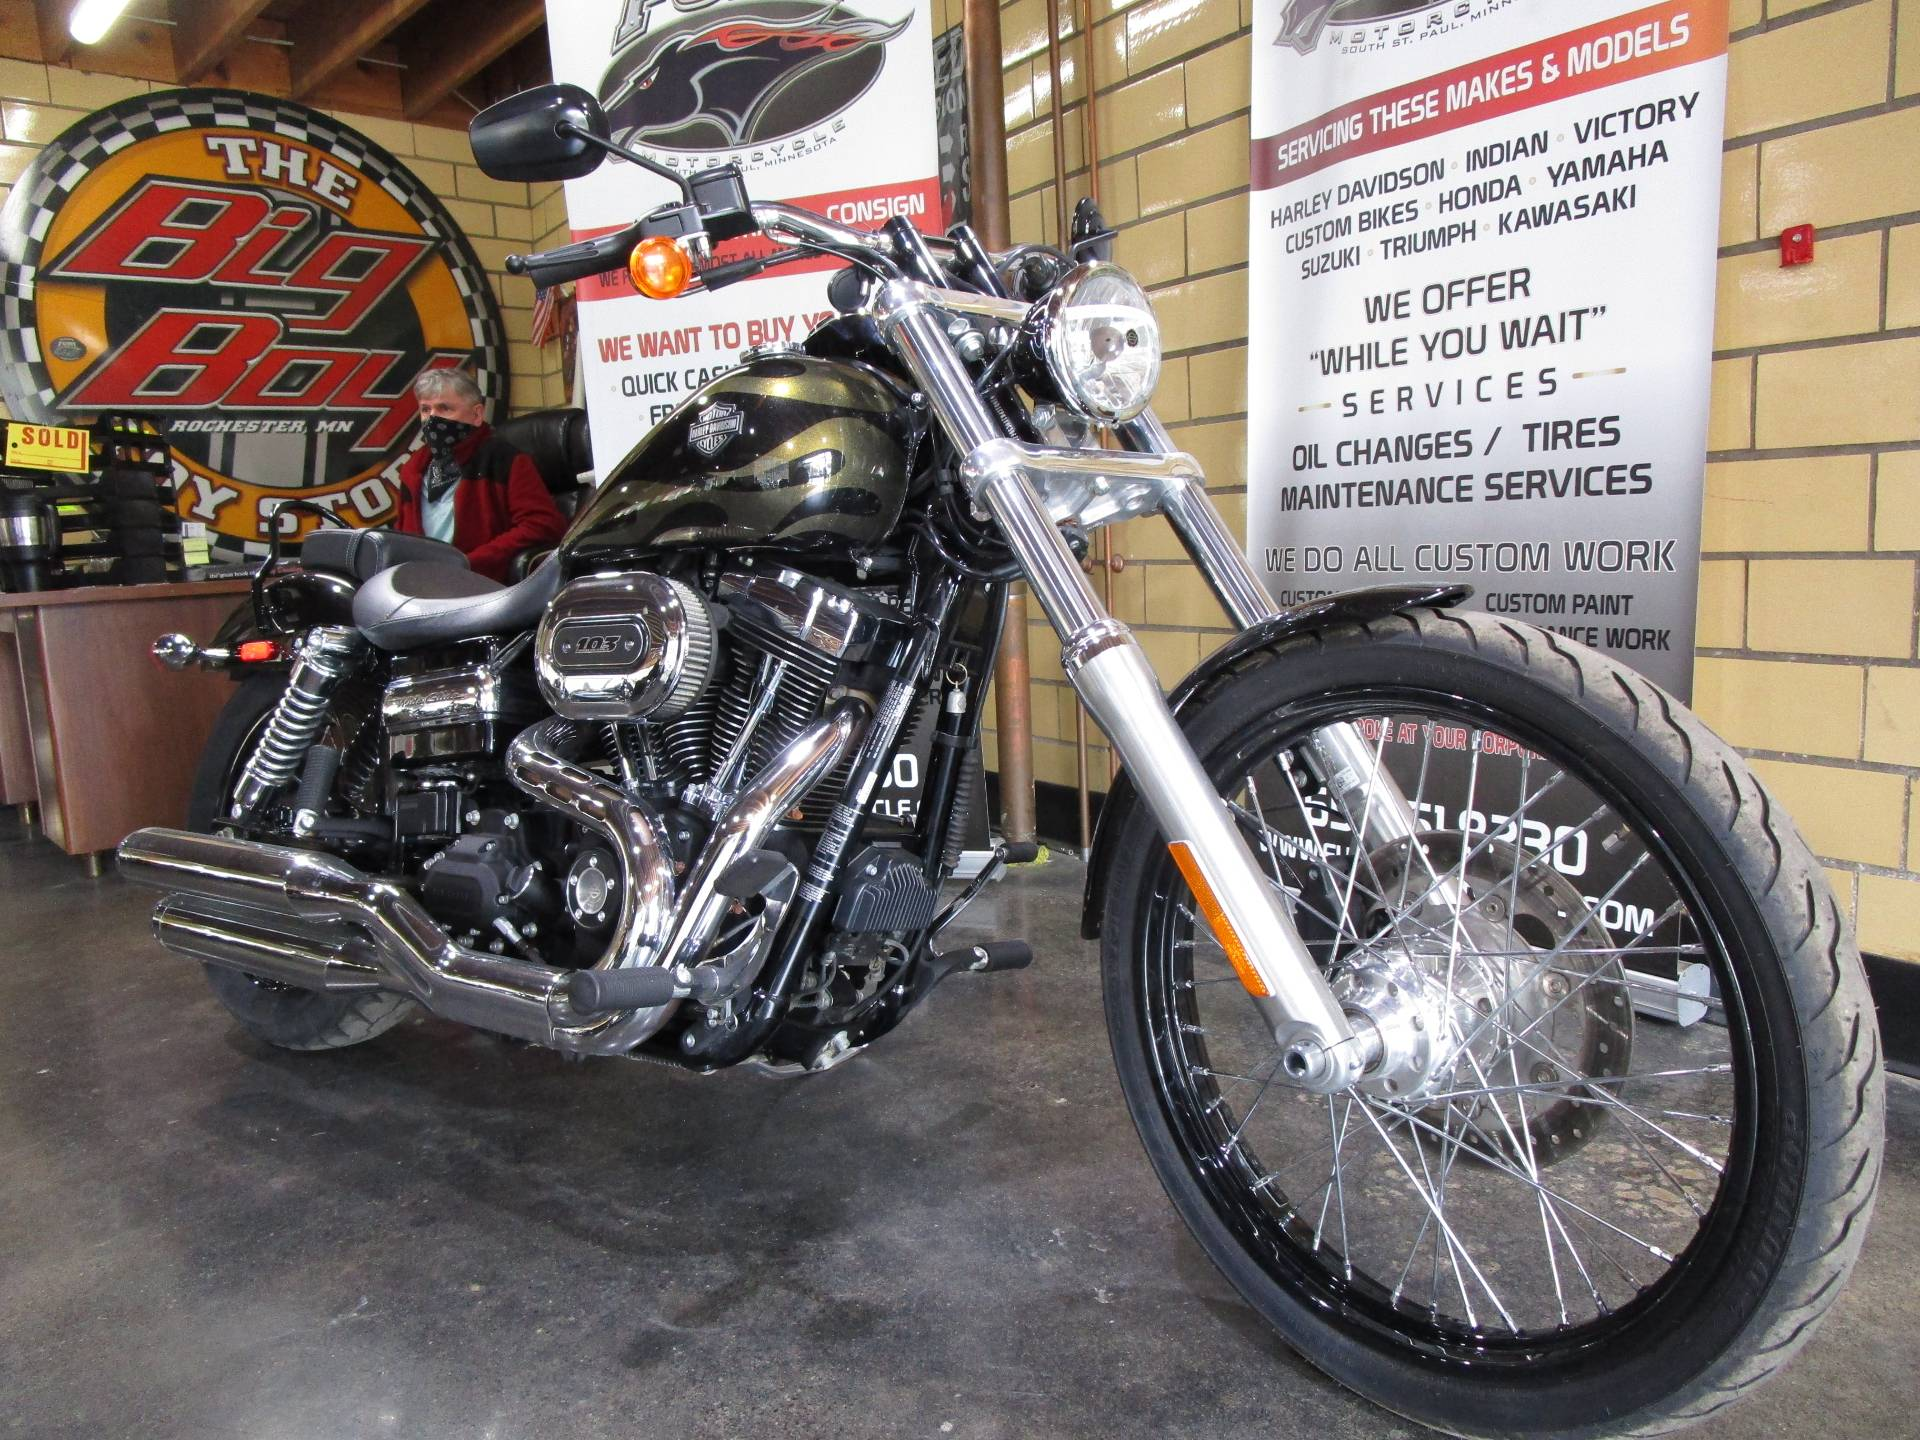 2017 Harley-Davidson Wide Glide in South Saint Paul, Minnesota - Photo 2